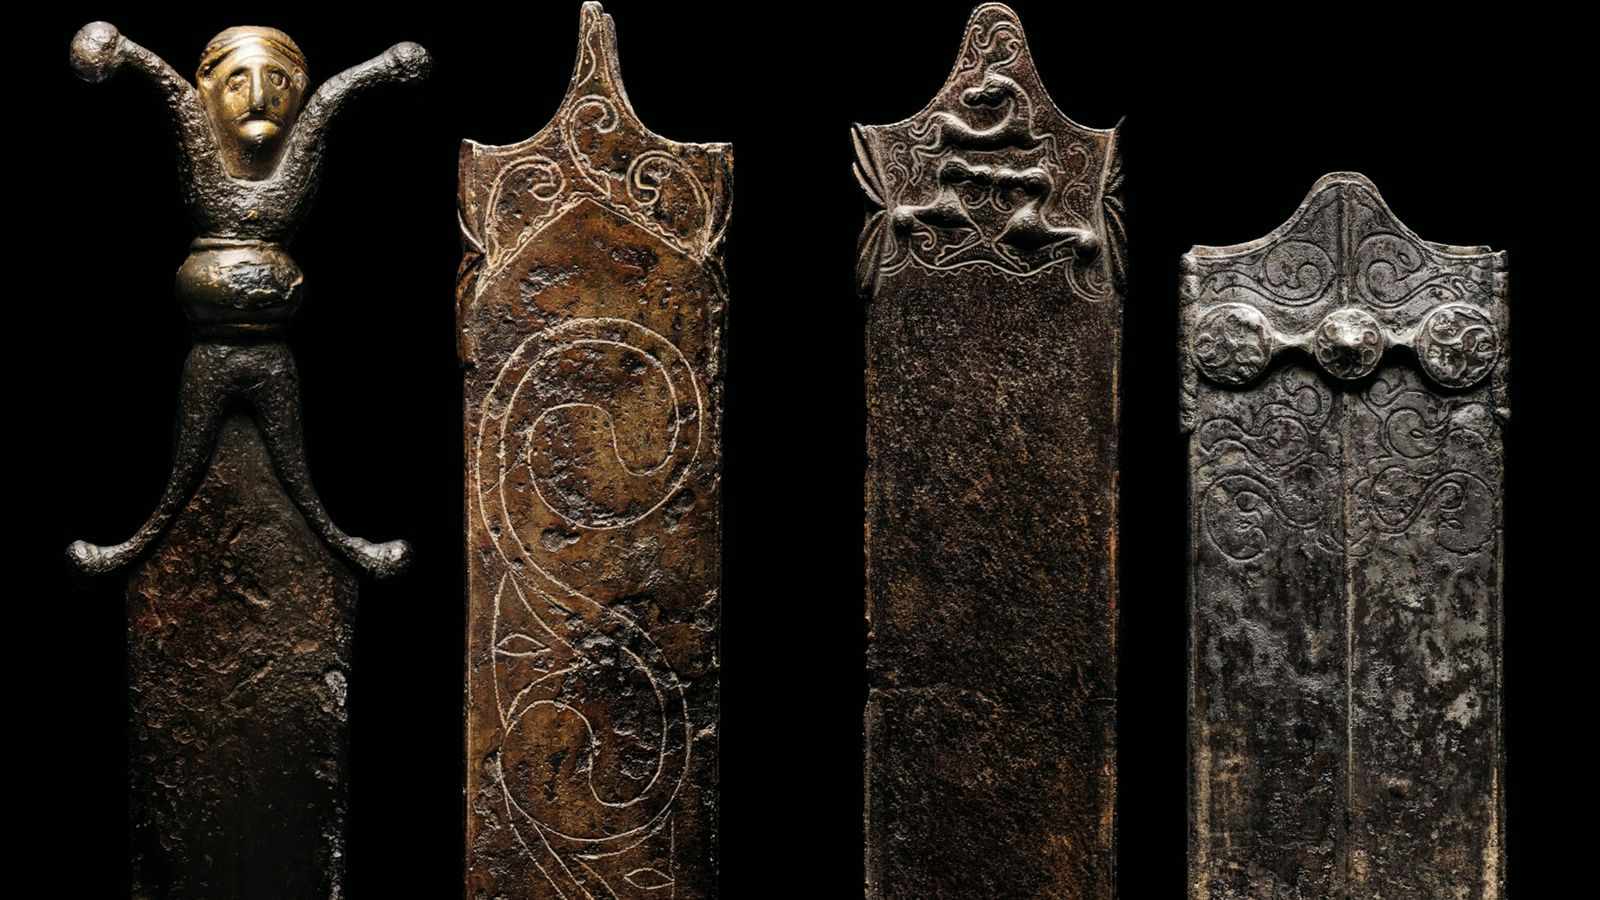 These iron and bronze scabbards were found in Switzerland, the product of the Celtic civilization known ...